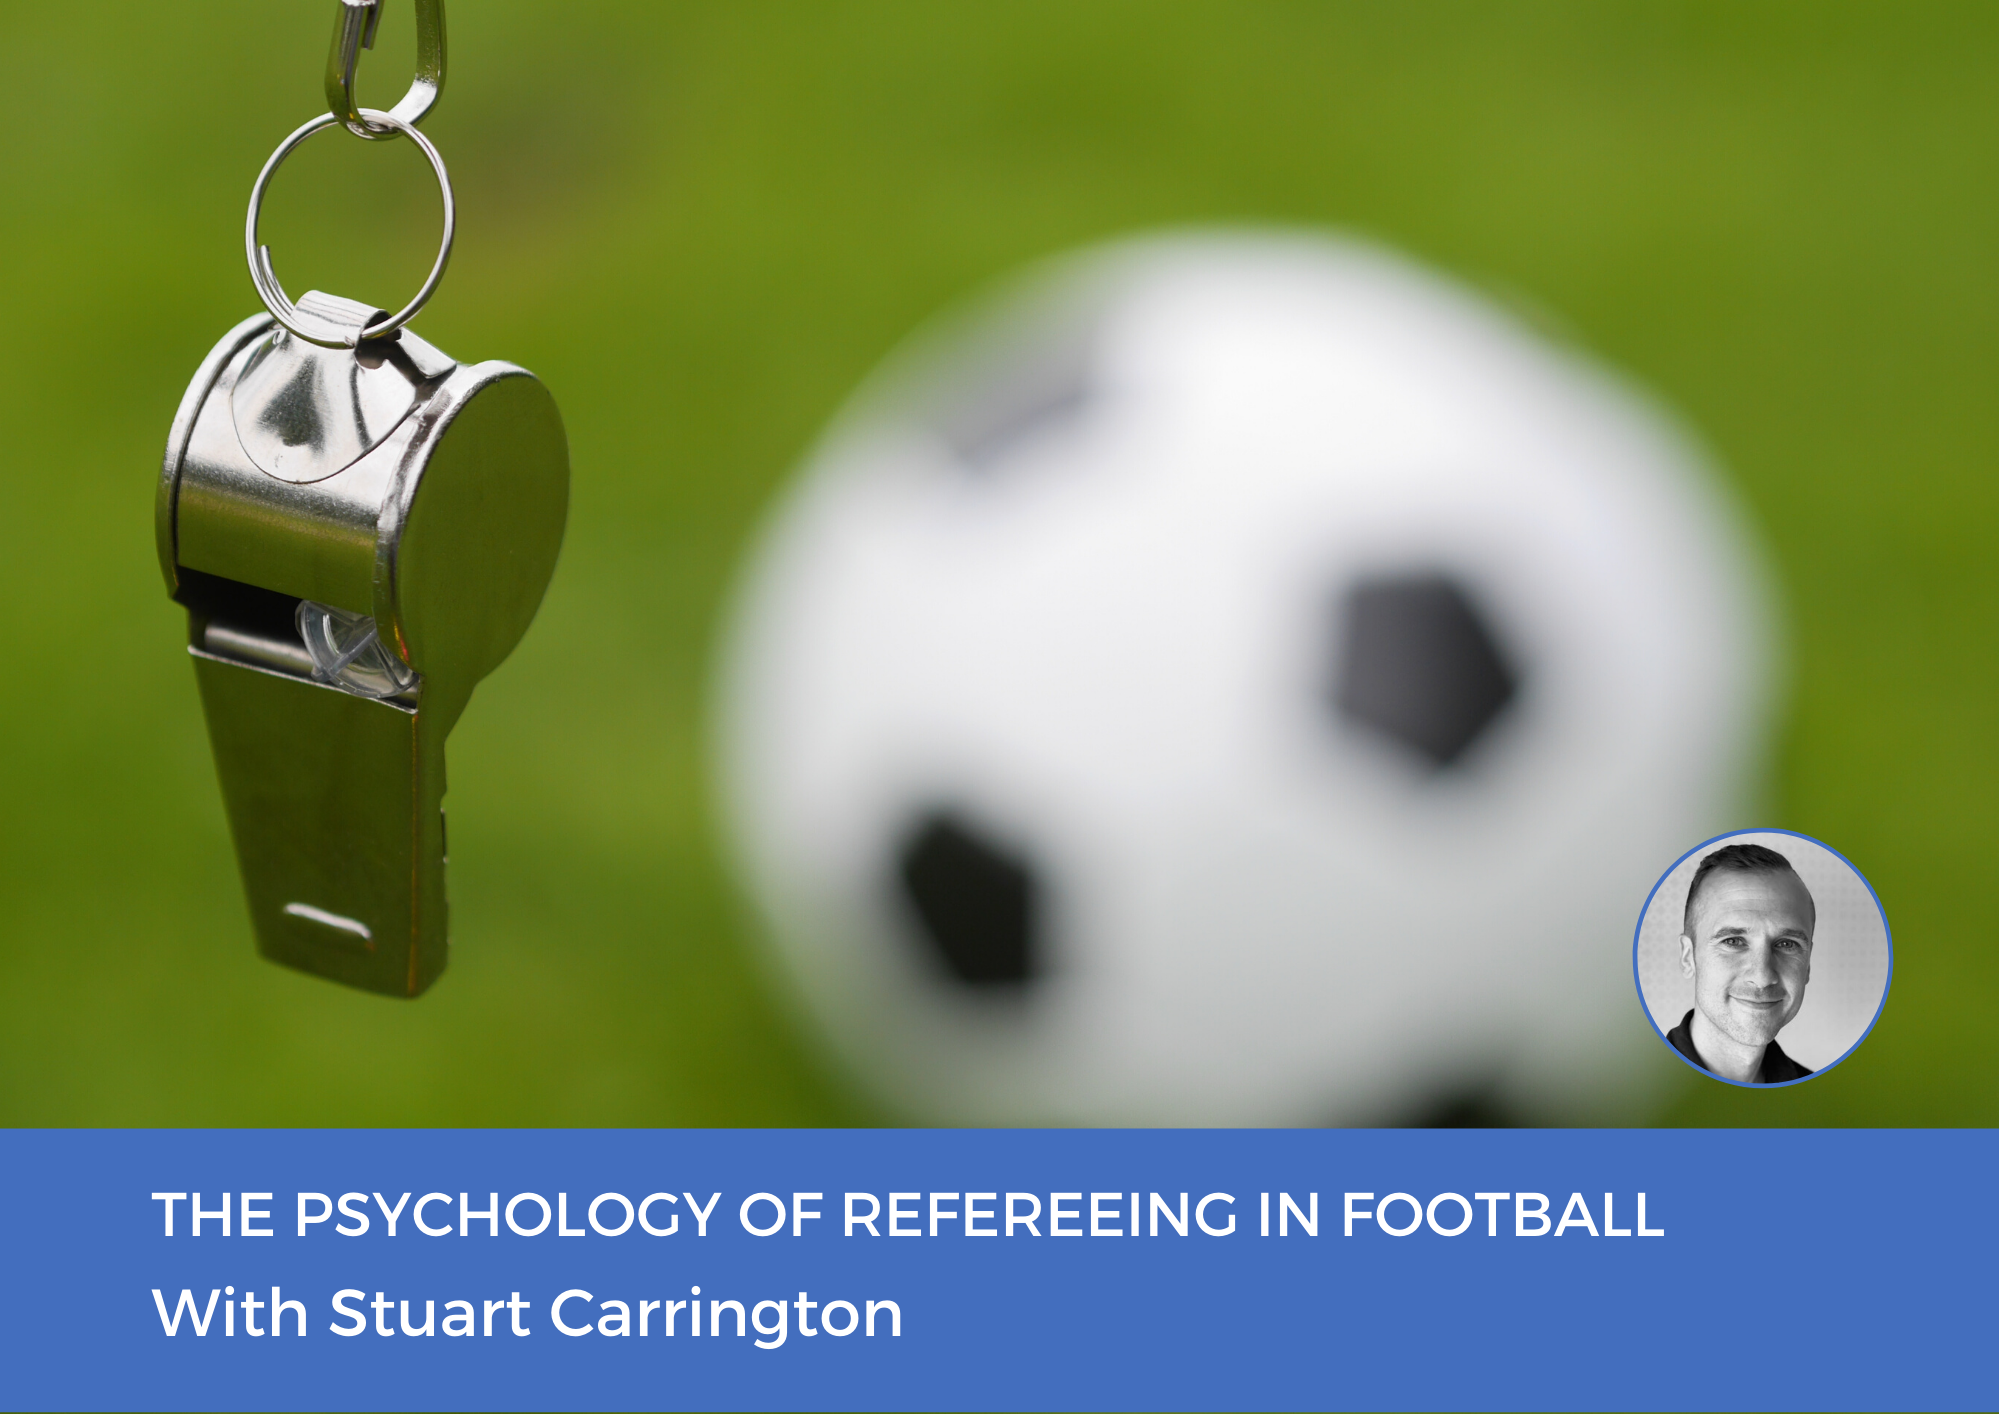 The Psychology of Refereeing